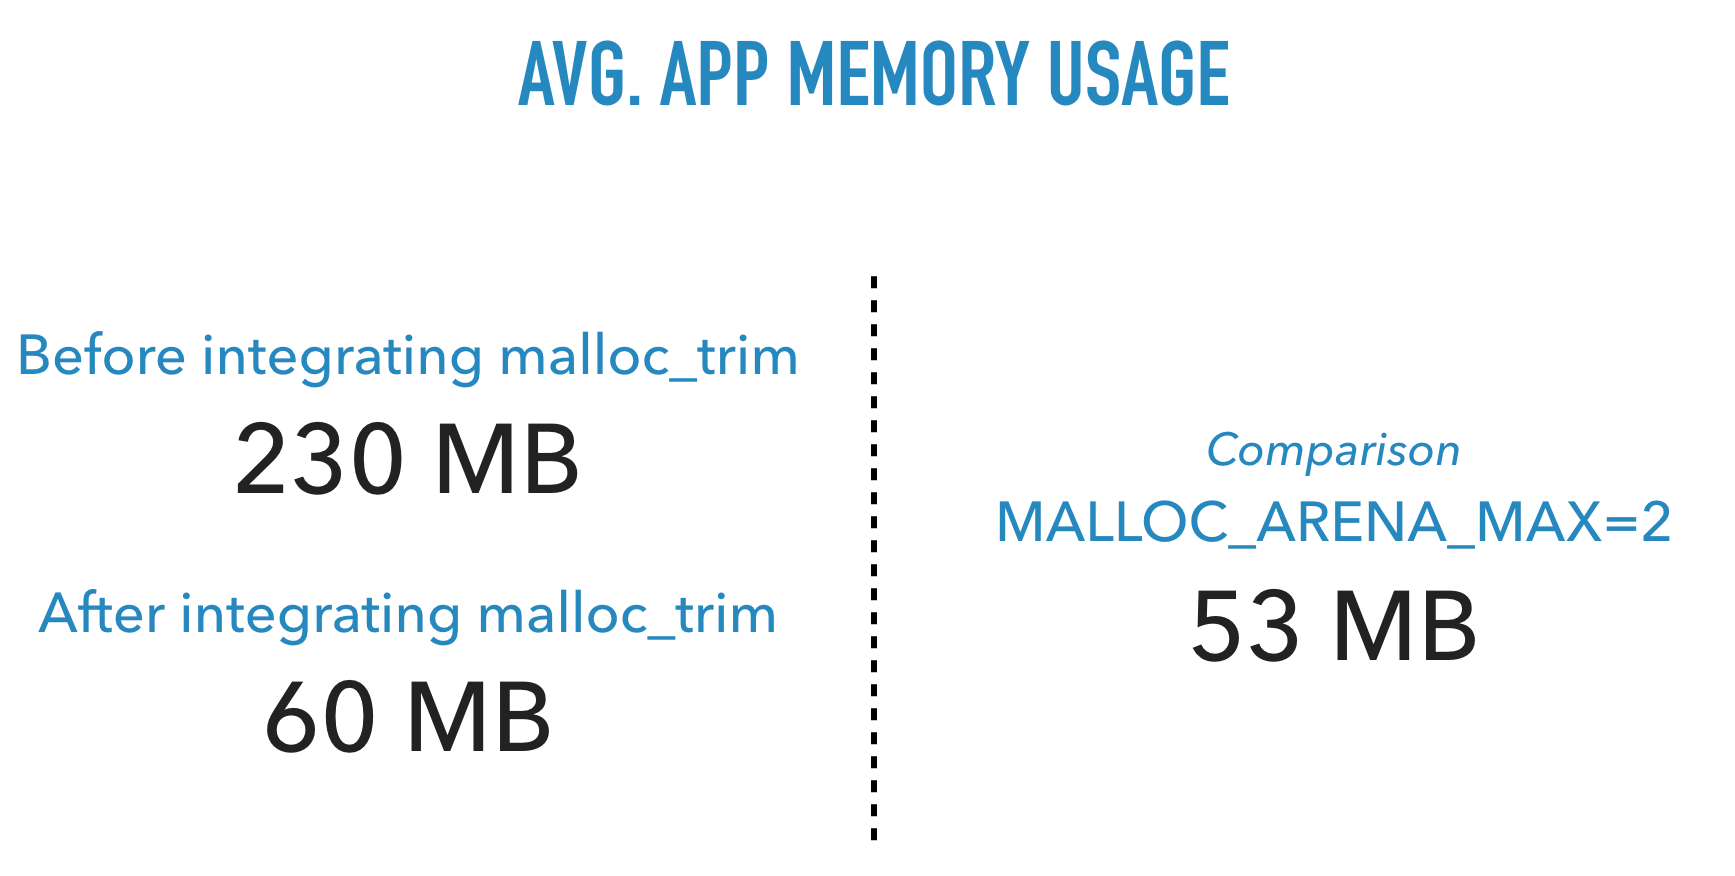 Average app memory usage. Before integrating malloc_trim: 230 MB. After integrating malloc_trim: 60 MB. Comparison with MALLOC_ARENA_MAX=2: 53 MB.